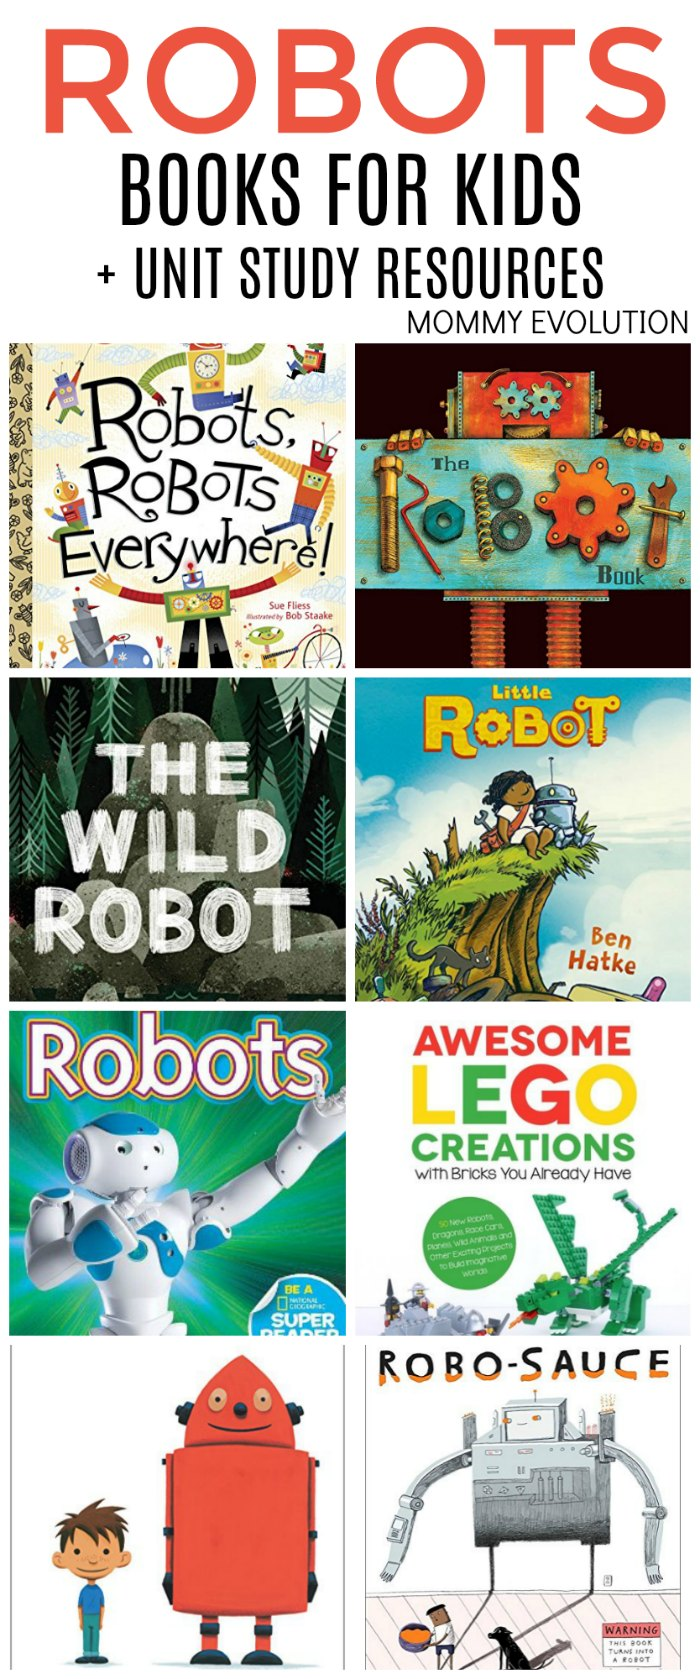 Robot Books for Kids + Robot Unit Study Resources | Mommy Evolution